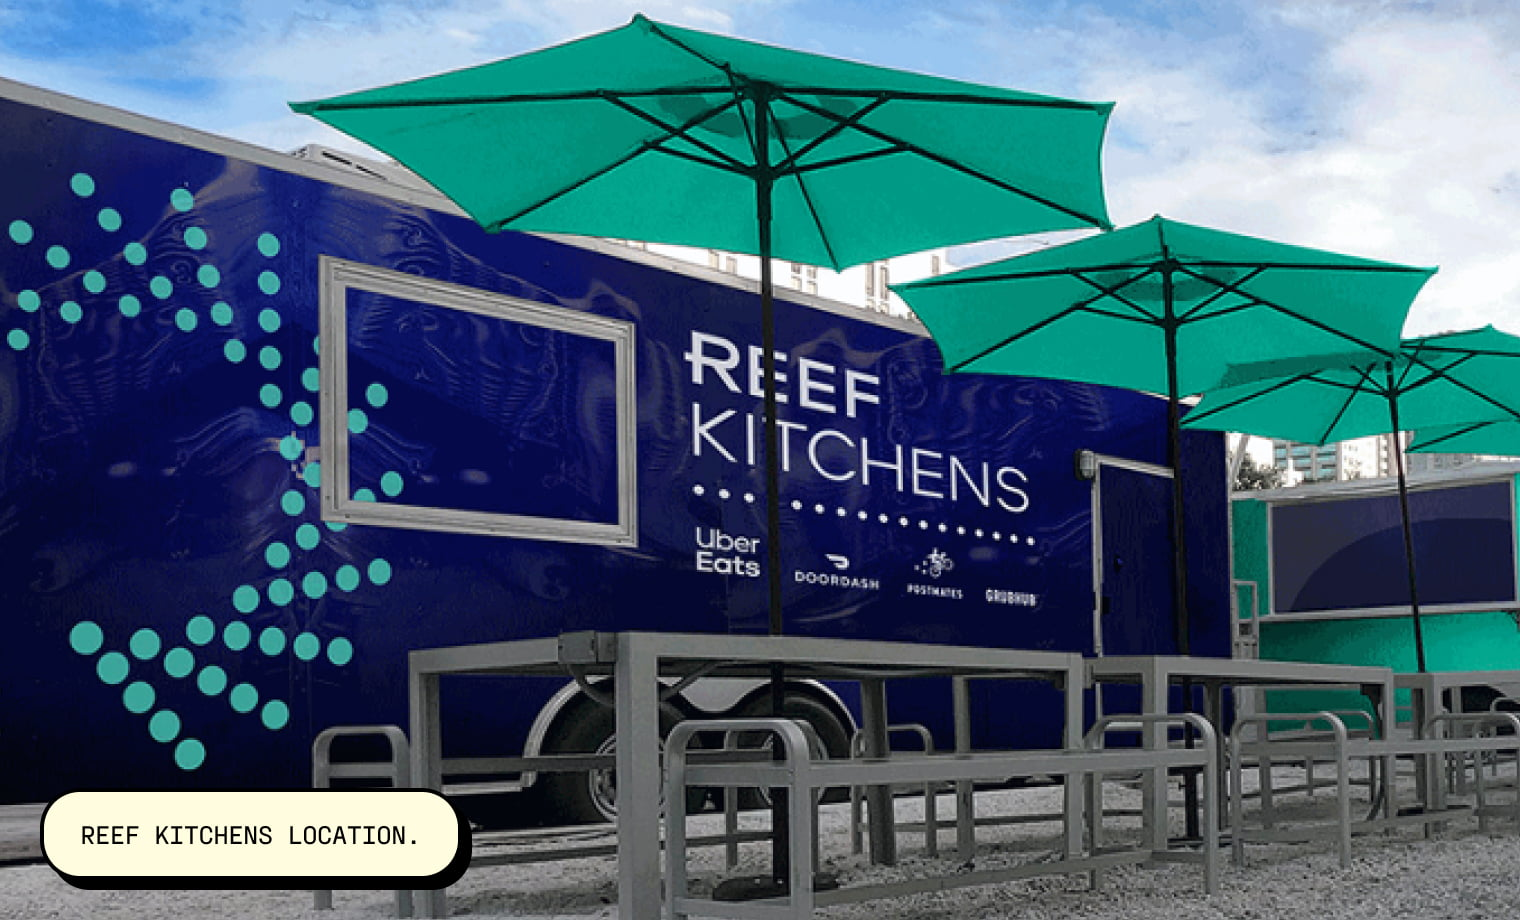 REEF Kitchens location. Image source: Restaurant Business